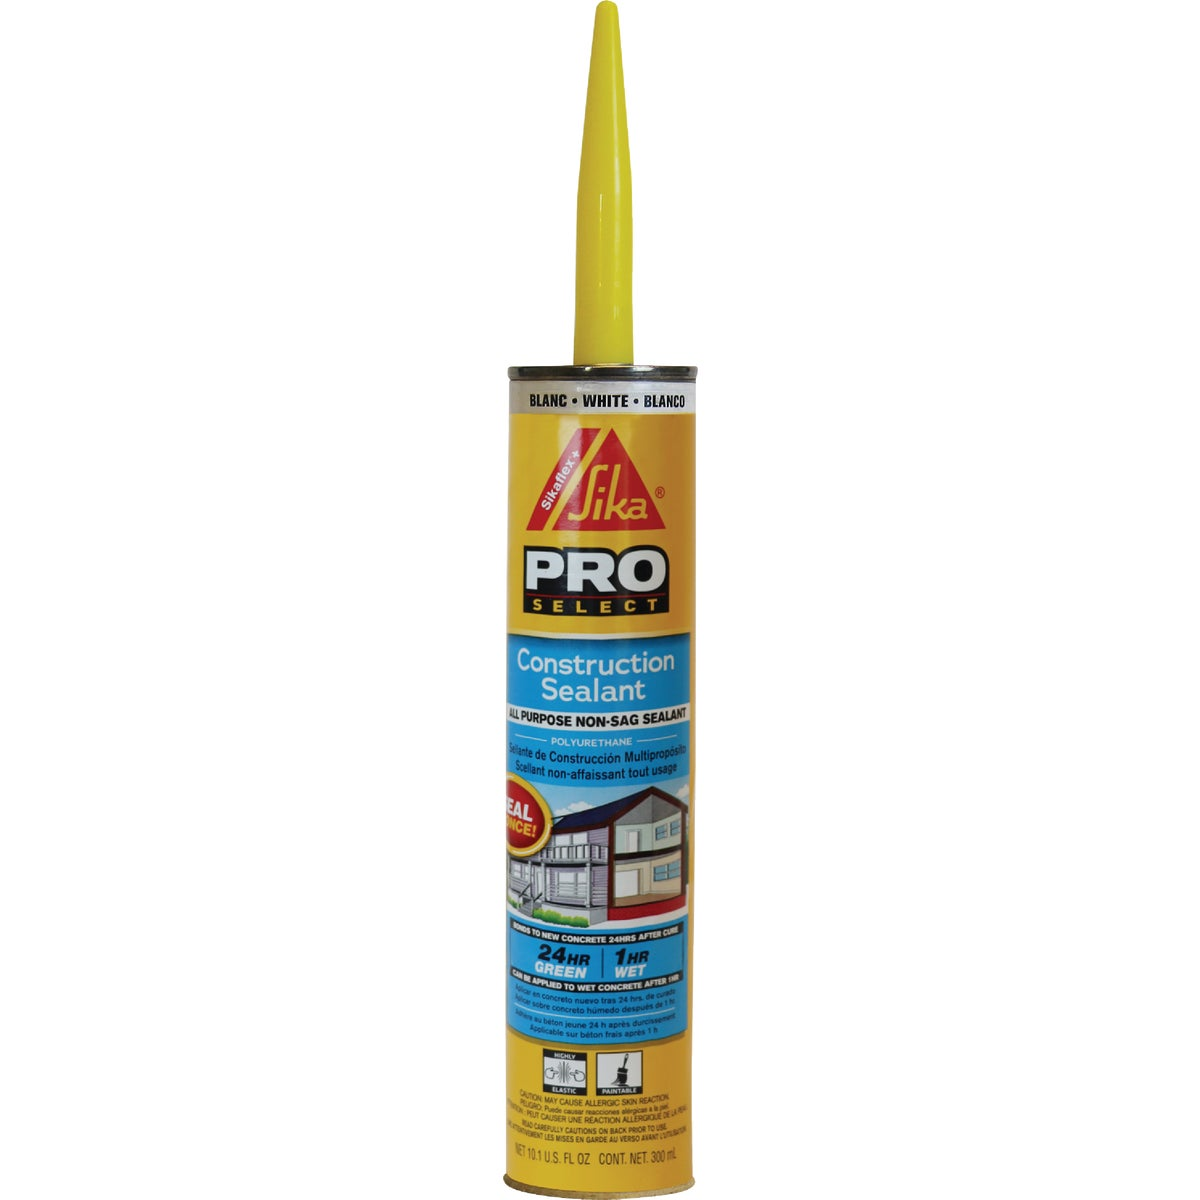 10 WH SKFLX CONS SEALANT - 90618 by Sika Corp